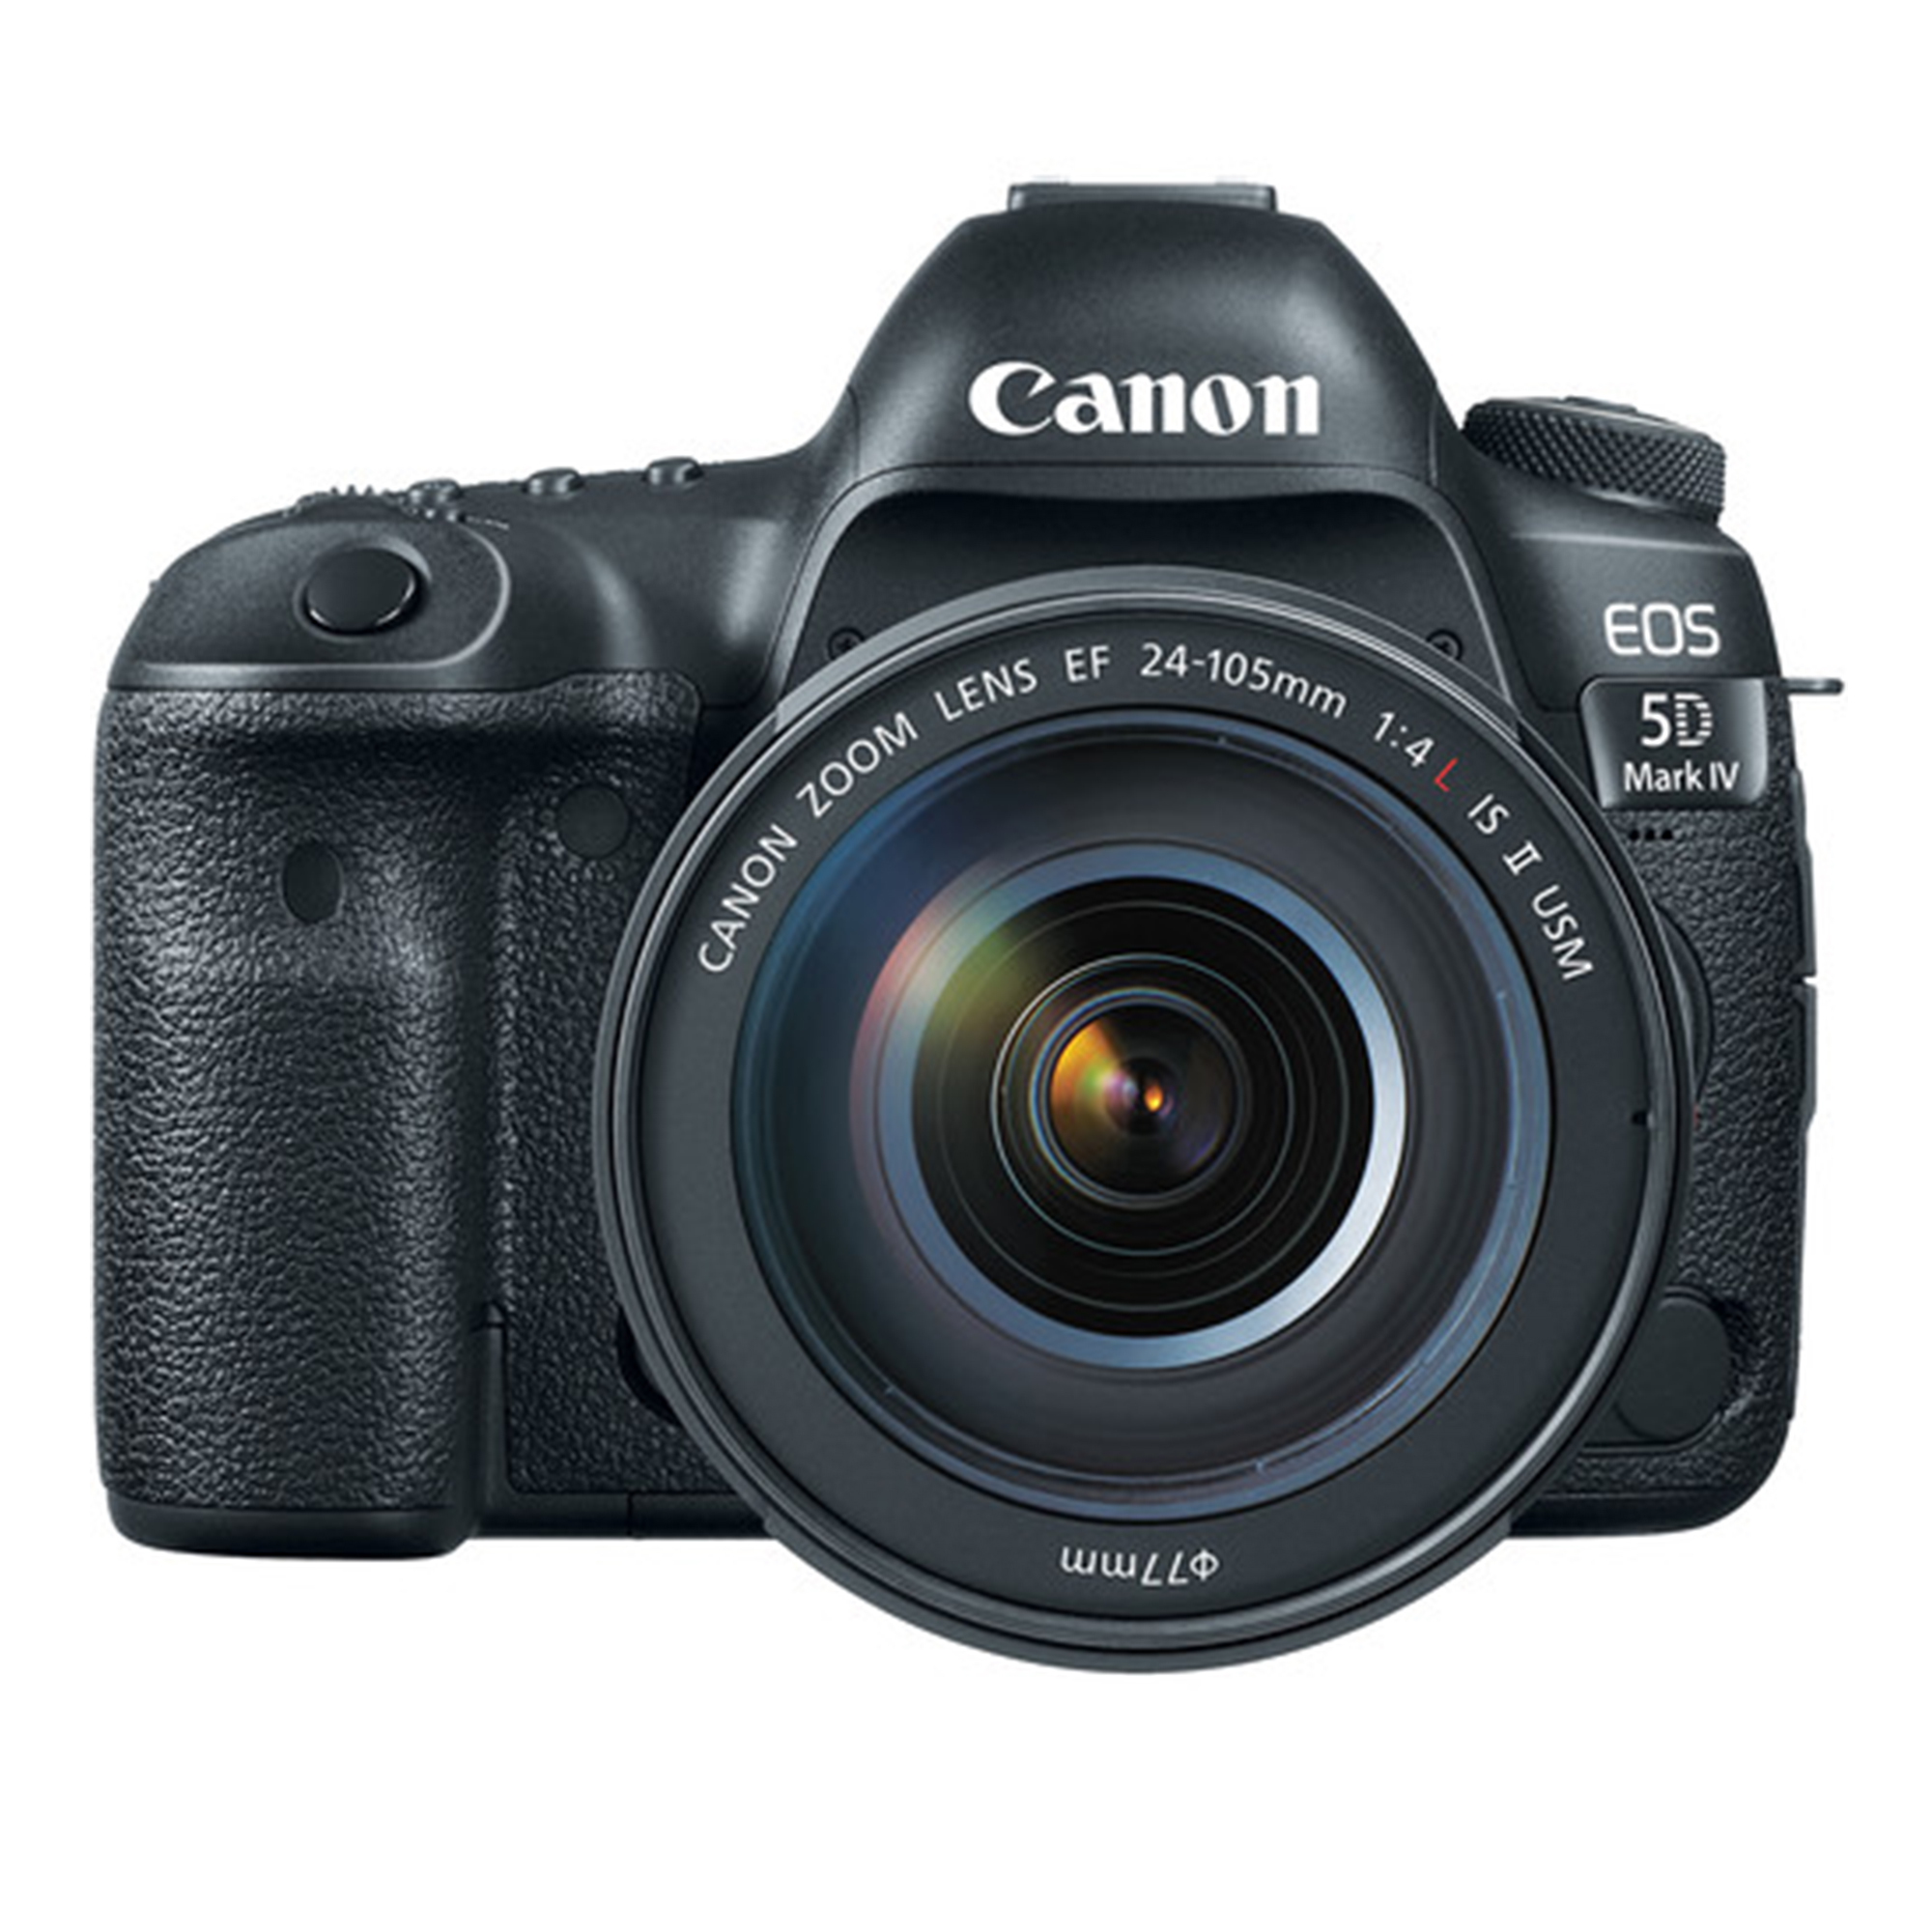 CANON EOS 5D MARK IV WITH EF 24-105 MM Lens